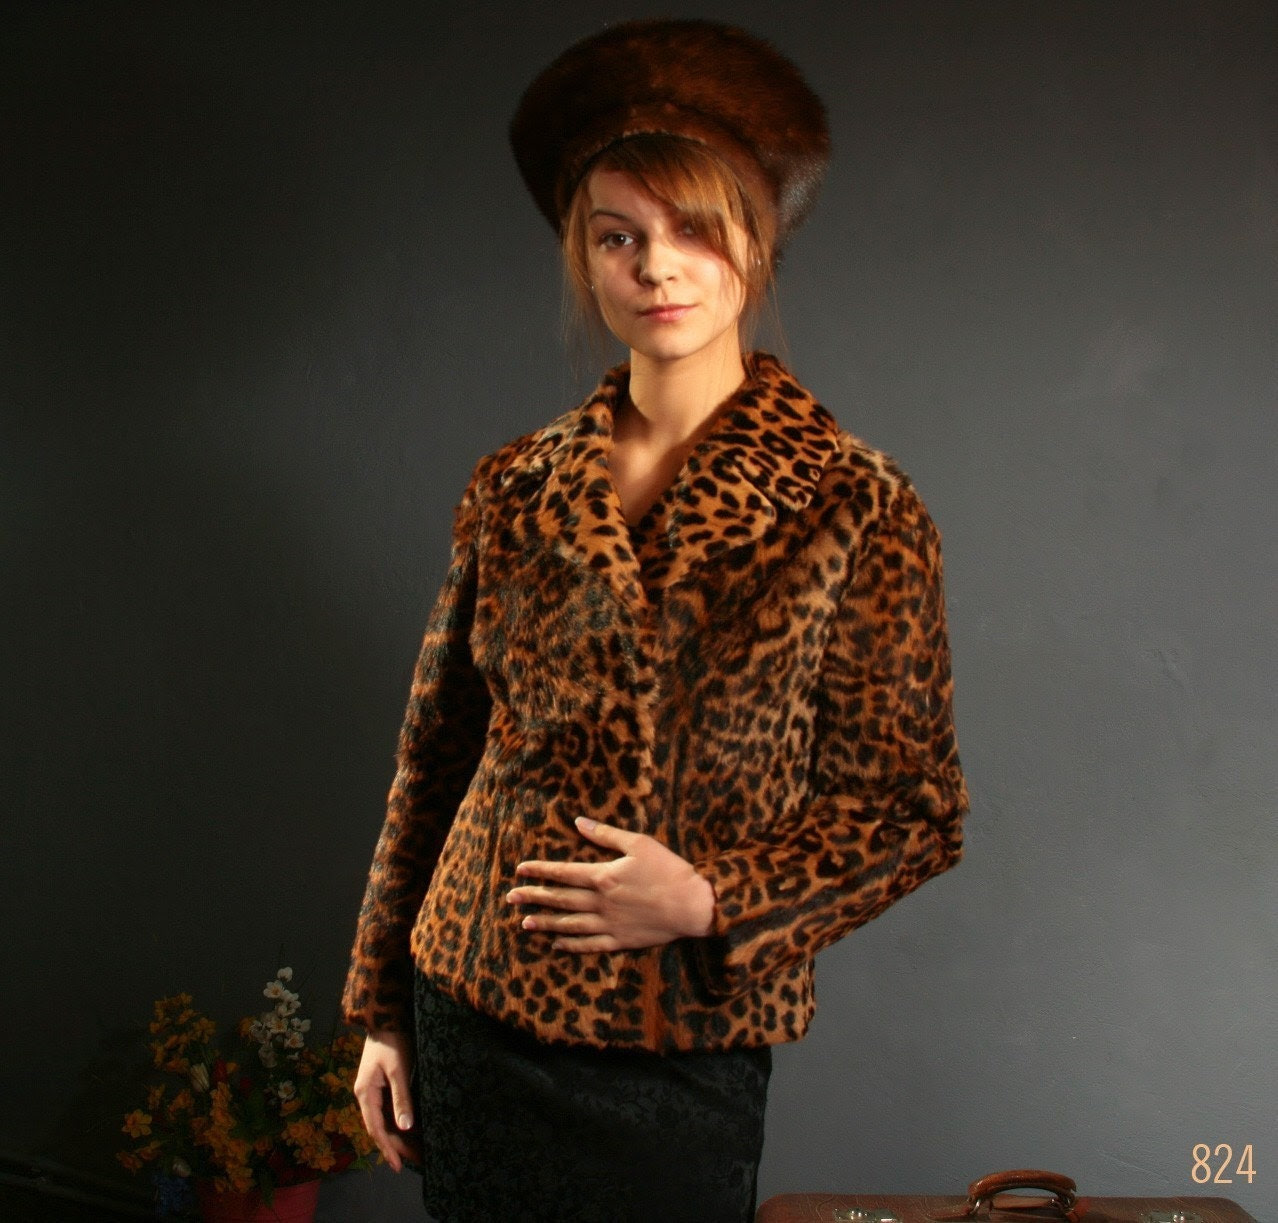 Vintage handmade classy REAL FUR LEOPARD print COAT KATE MOSS or JACKIE ONASSIS style, size Small, Medium, size S / M